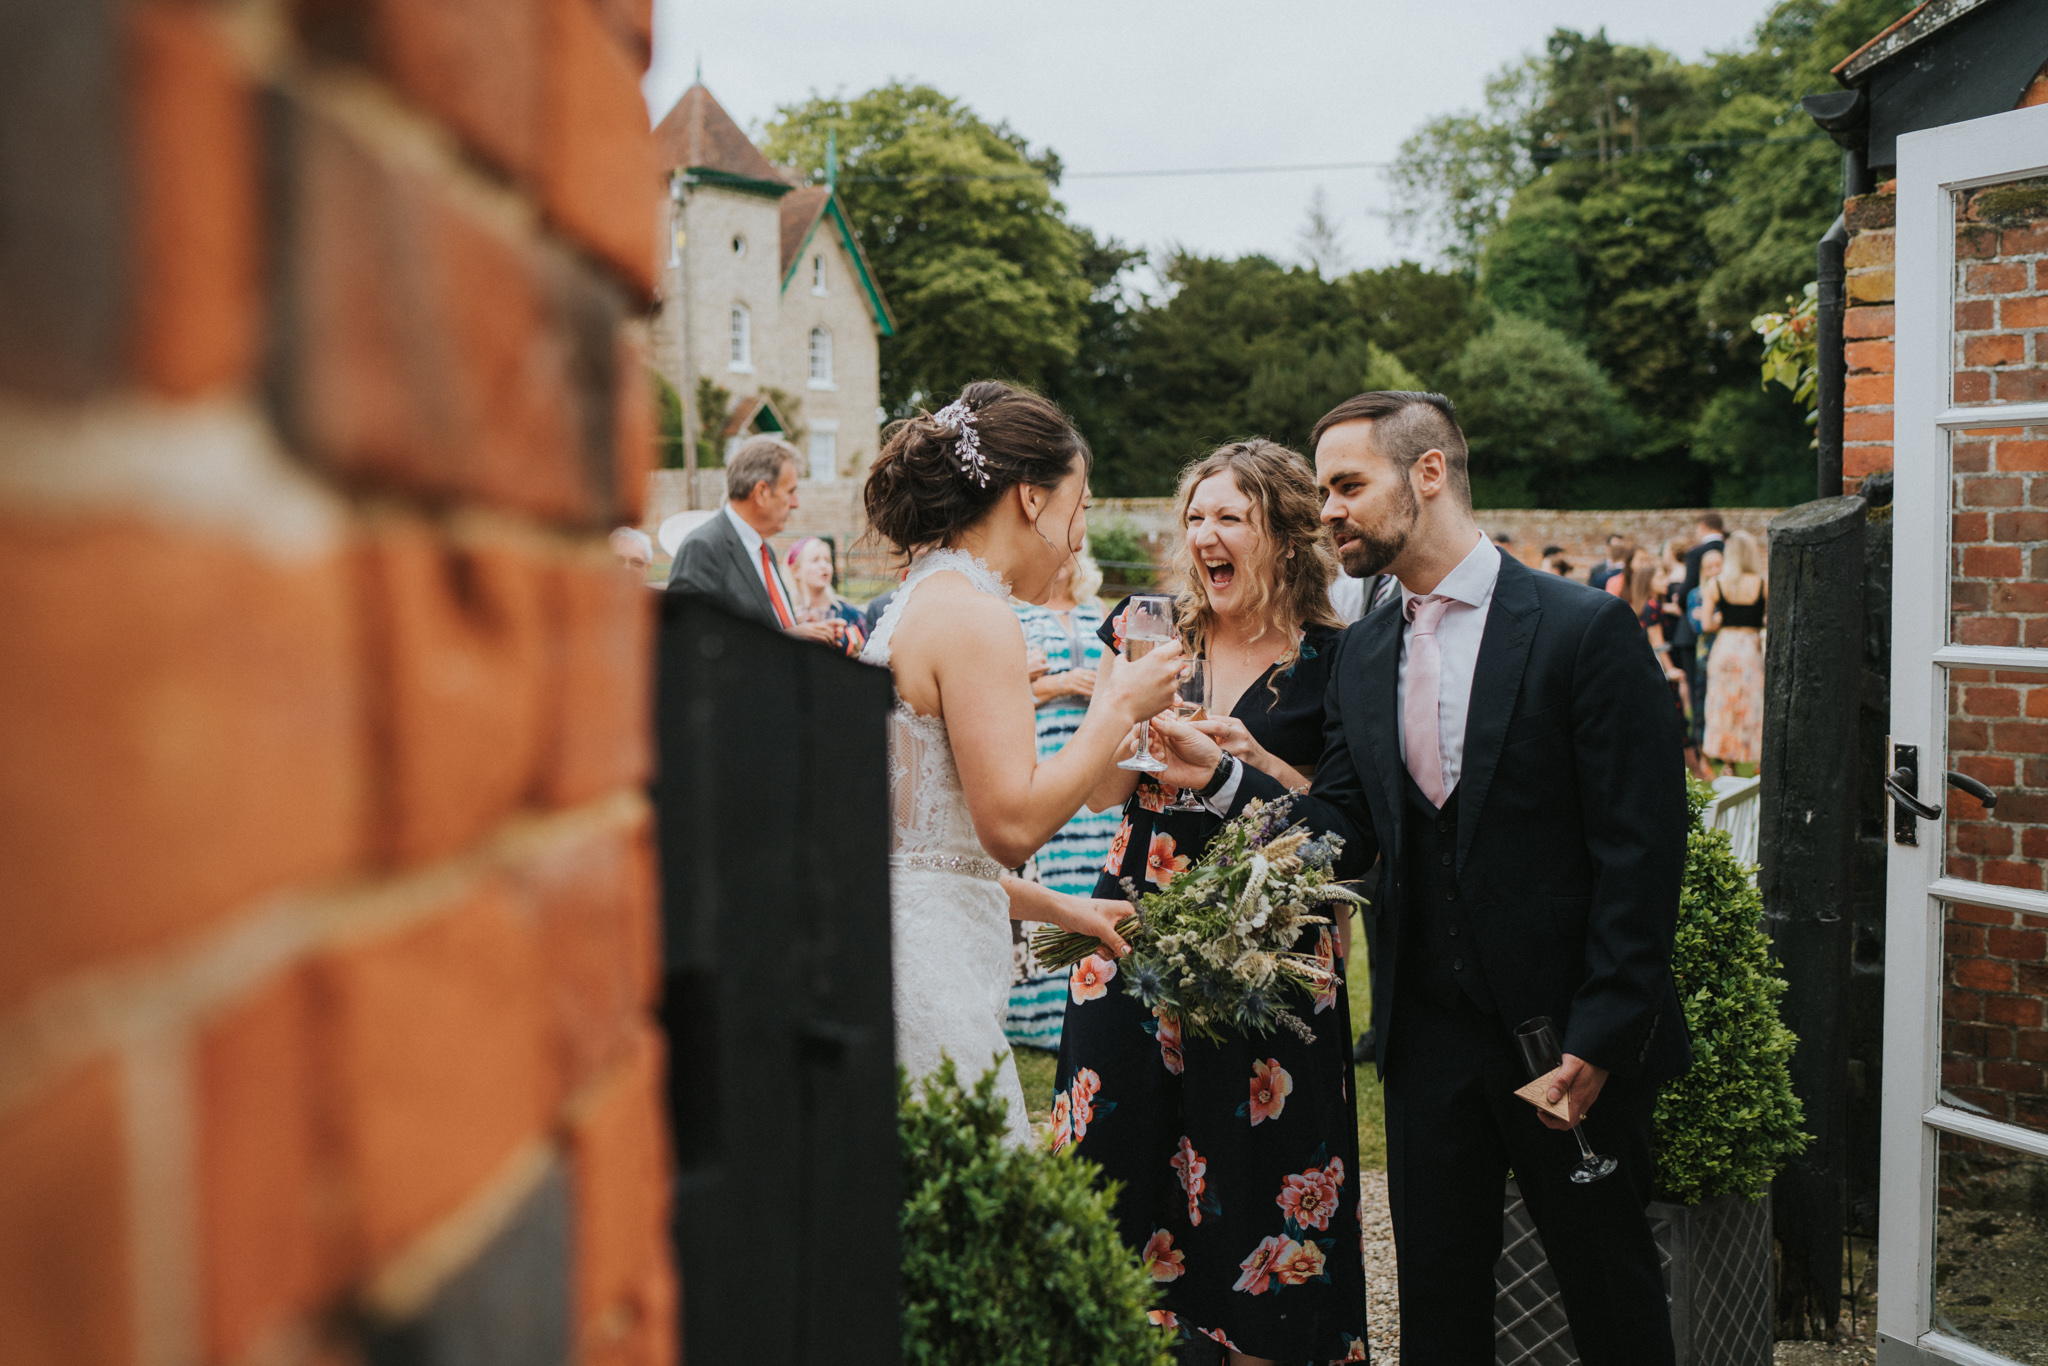 jane-patrick-smeetham-hall-barn-grace-elizabeth-colchester-essex-alternative-wedding-lifestyle-photographer-essex-suffolk-norfolk-devon (25 of 52).jpg